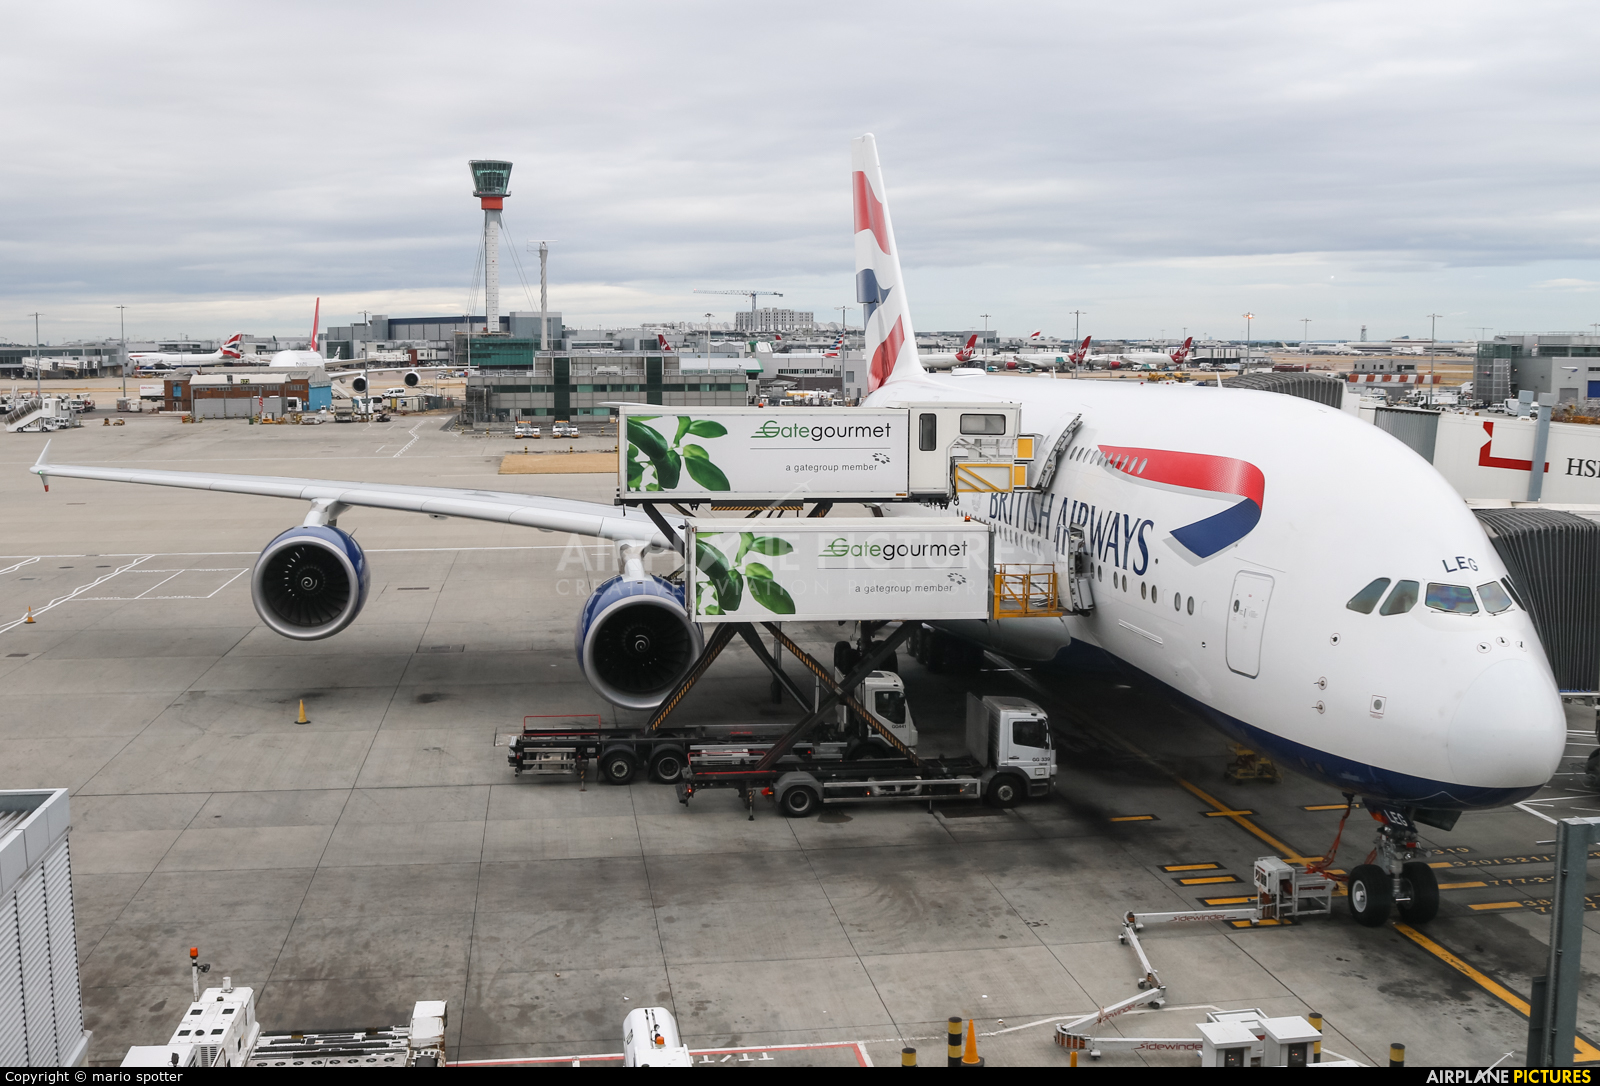 British Airways G-XLEG aircraft at London - Heathrow